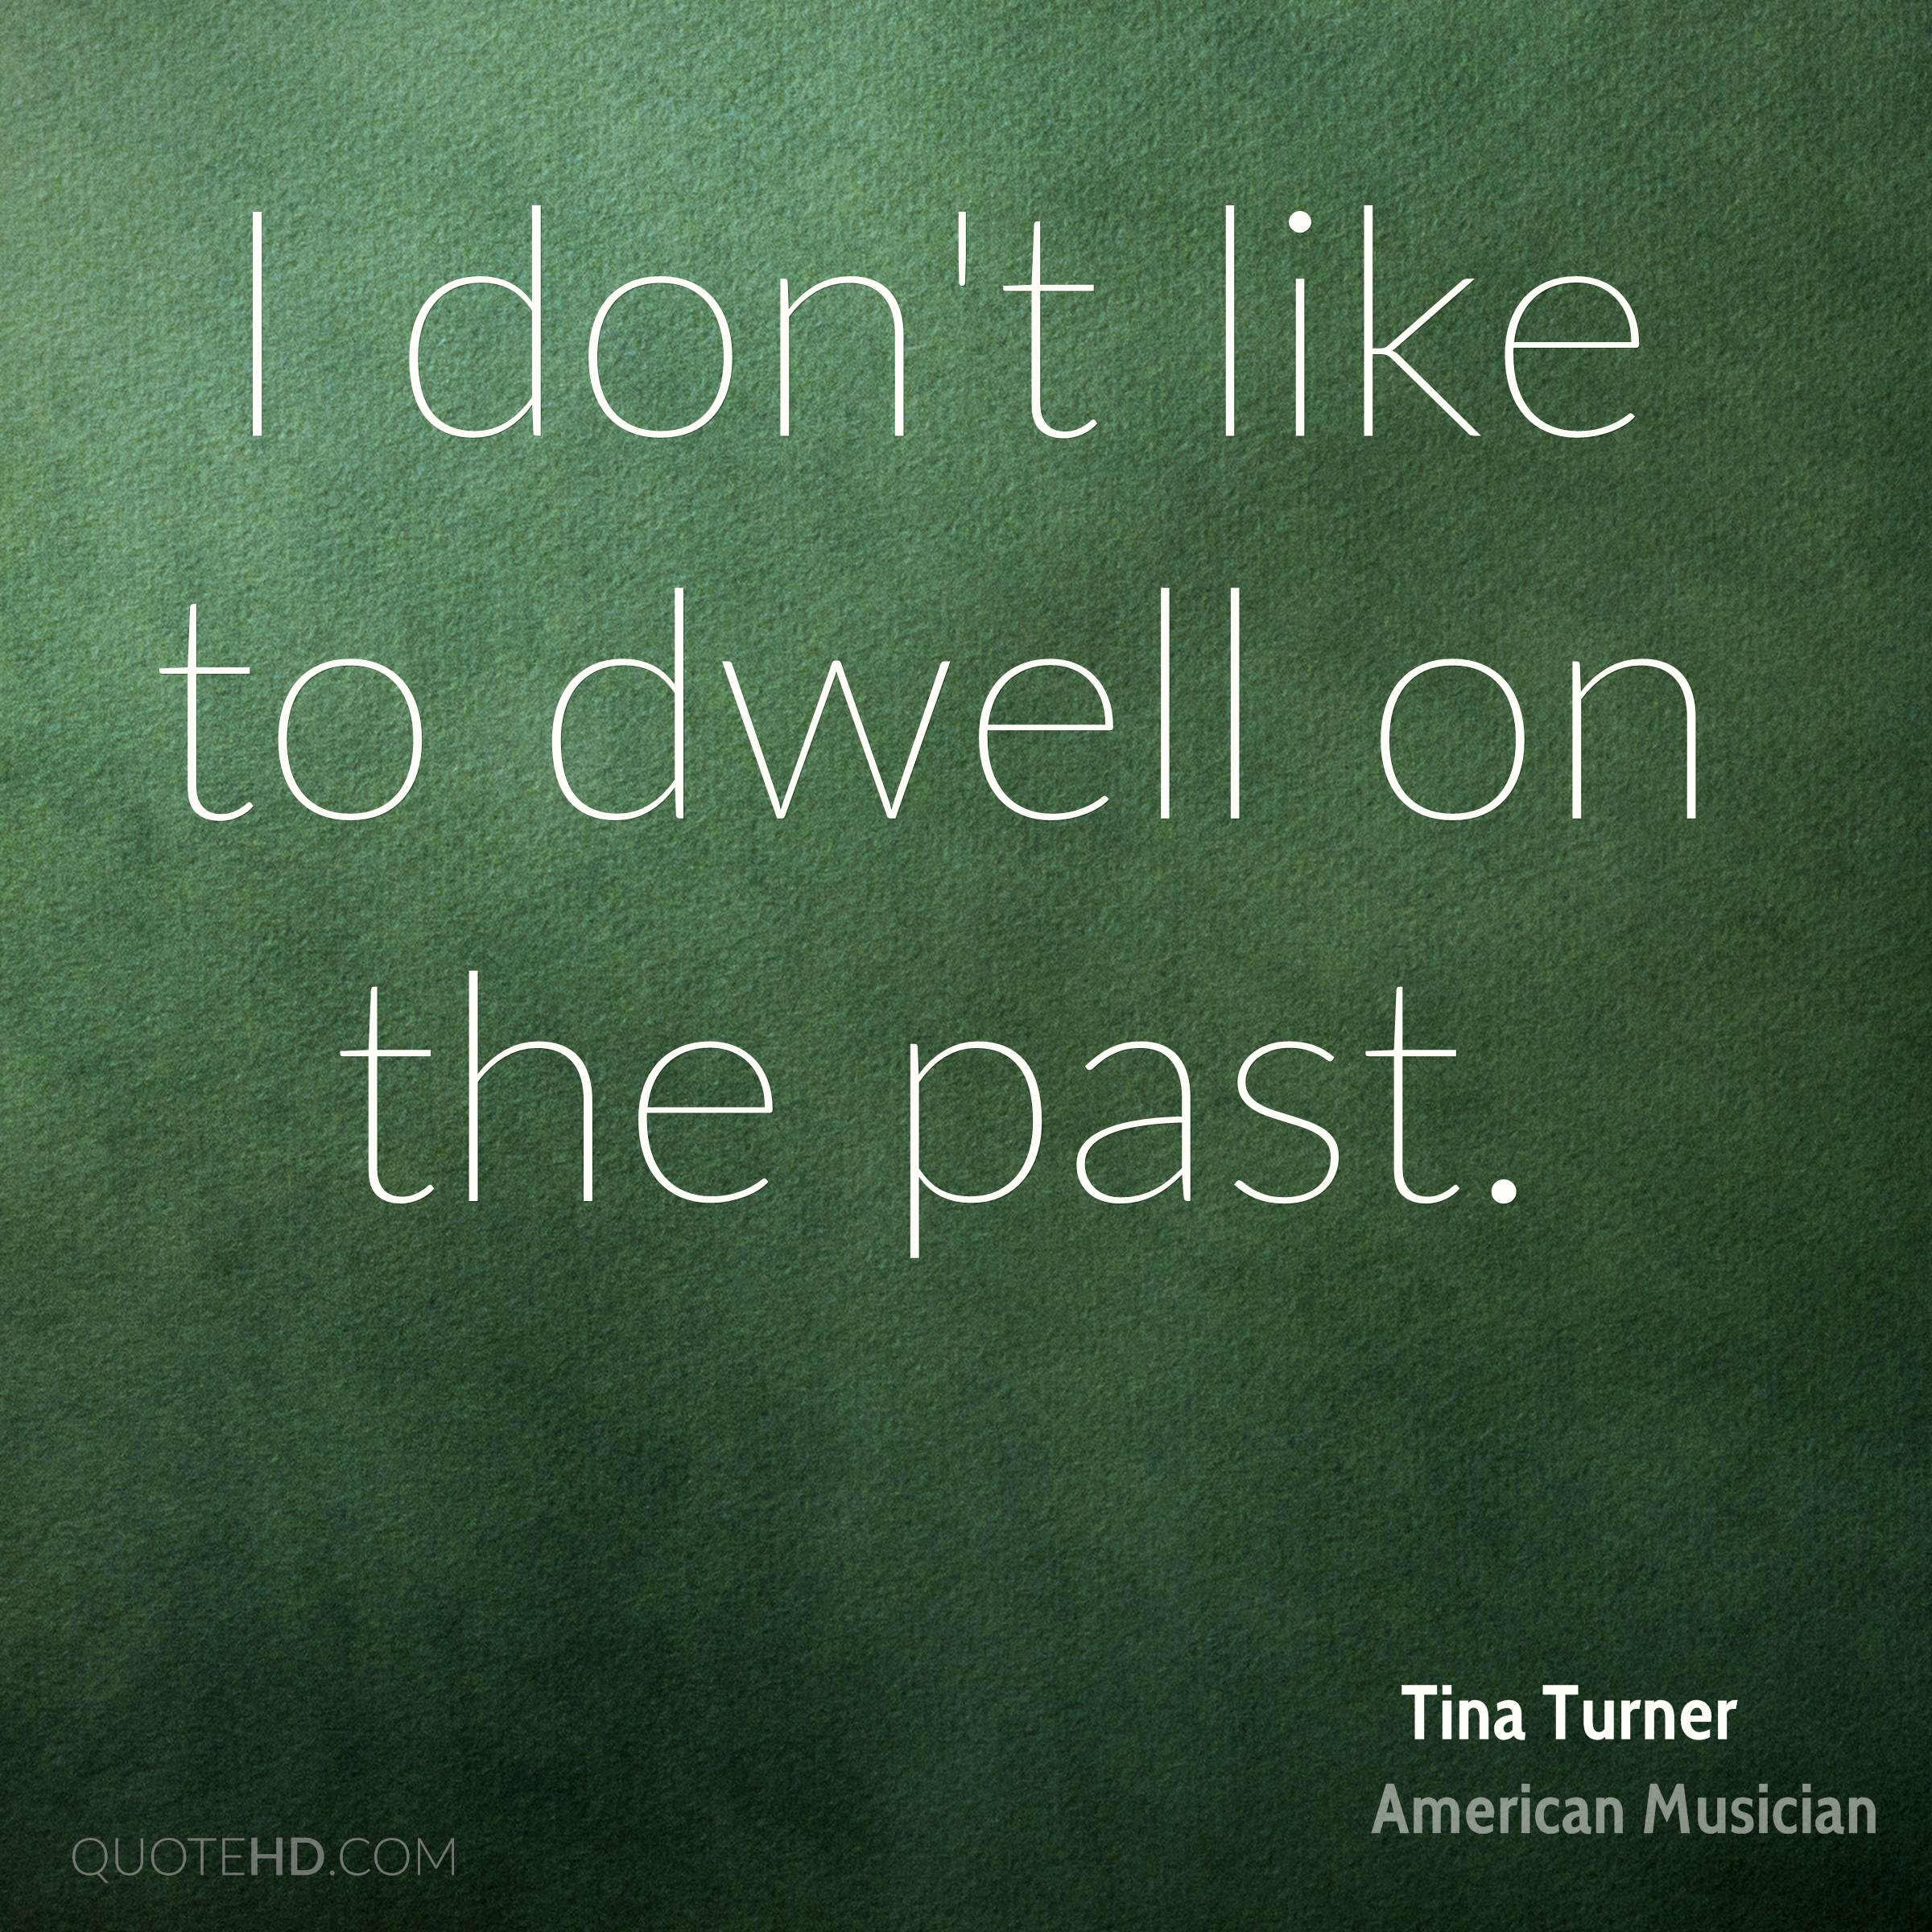 Tina Turner Quotes Quotehd